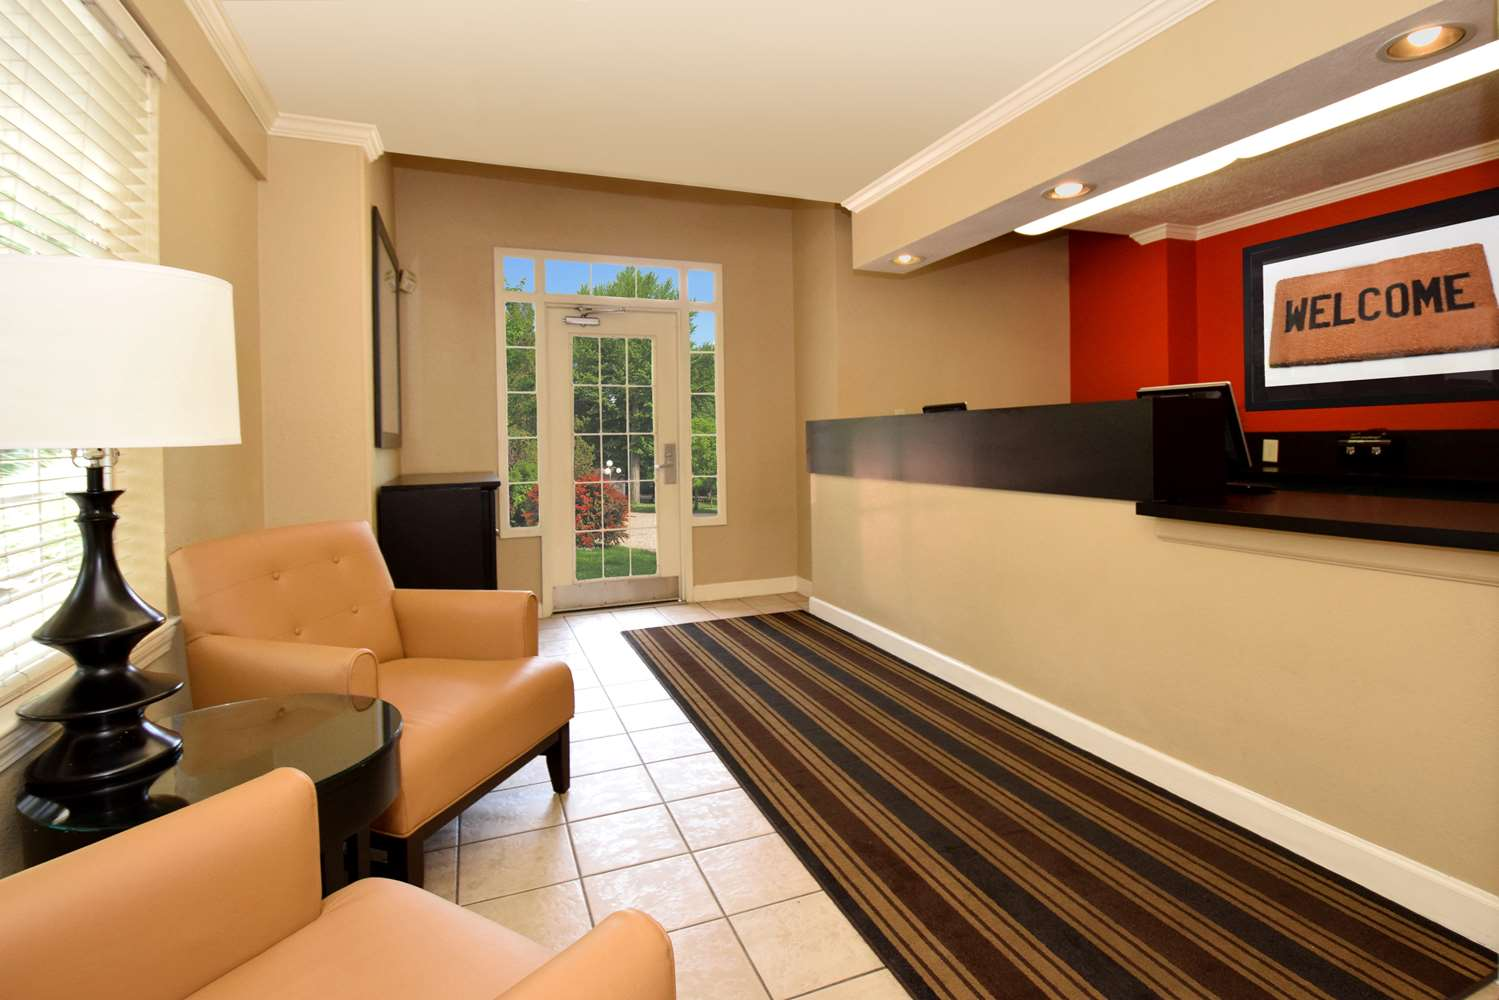 Extended Stay Hotel America BWI Linthicum, MD - See Discounts